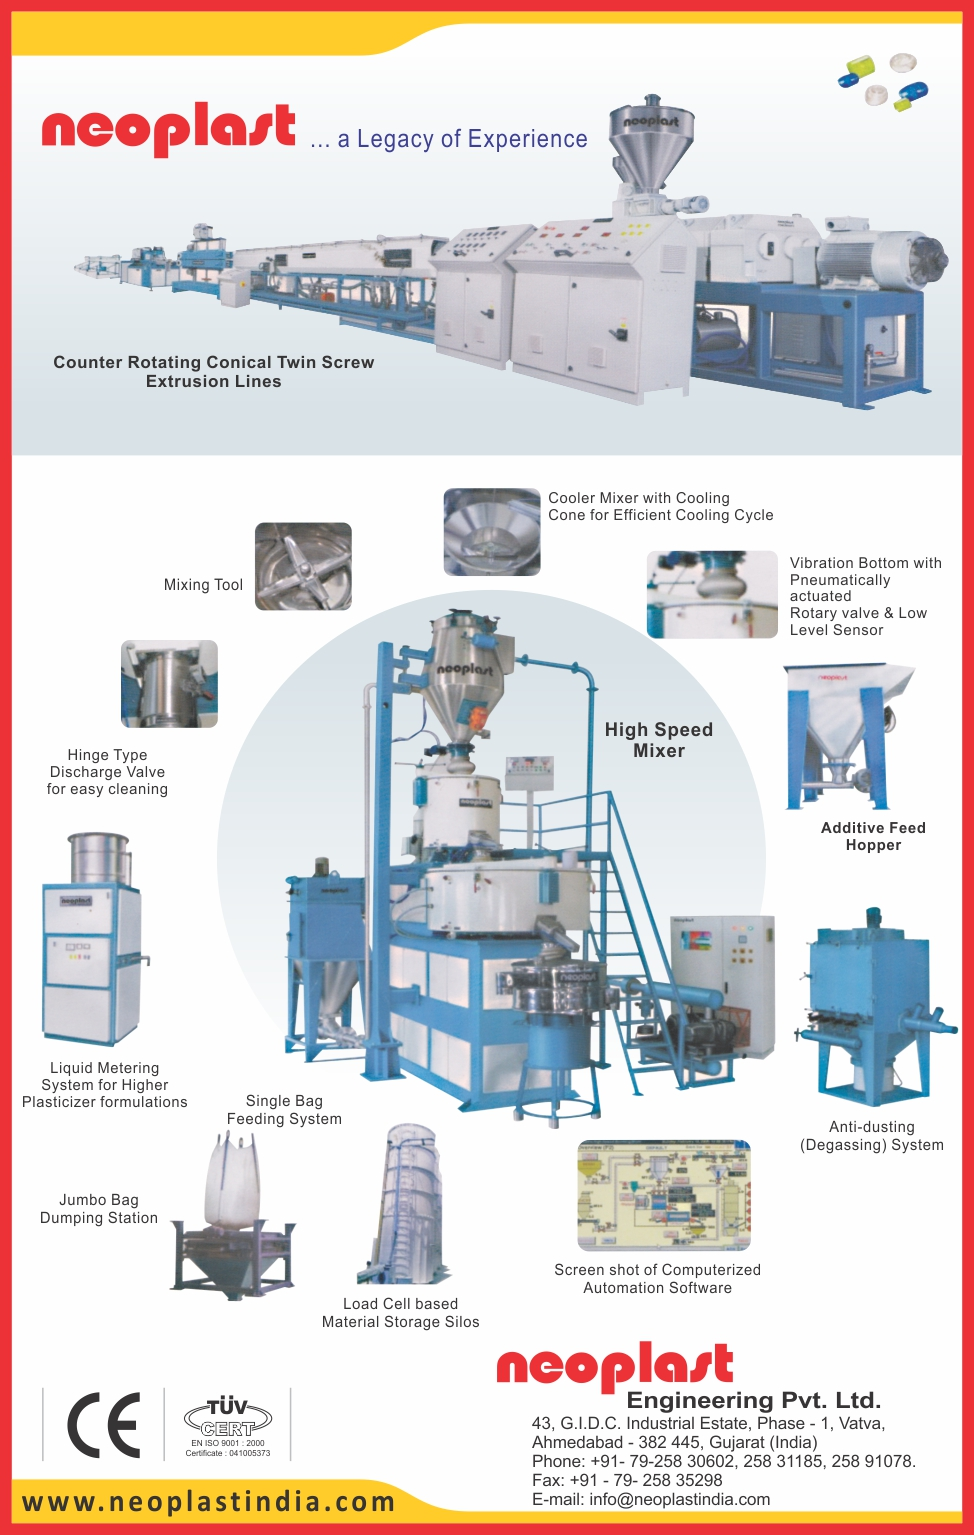 Counter Rotating Conical Twin Screw Extrusion Lines, Mixing Tools, Cooling Cone Cooler Mixer, High Speed Mixers, Additive Feed Hopper, Anti Dusting Systems, Single Bag Feeding Systems, Jumbo Bag Dumping Station, Load Cell Based Material Storage Soils, Easy Cleaning Hinge Type Discharge Valve, Plasticizer Formulation Liquid Metering Systems,Load Cell Based Material Storage Silos, Jumbo Bag Dumping Station, Liquid Metering System, High Speed Mixer, Cooler Mixer